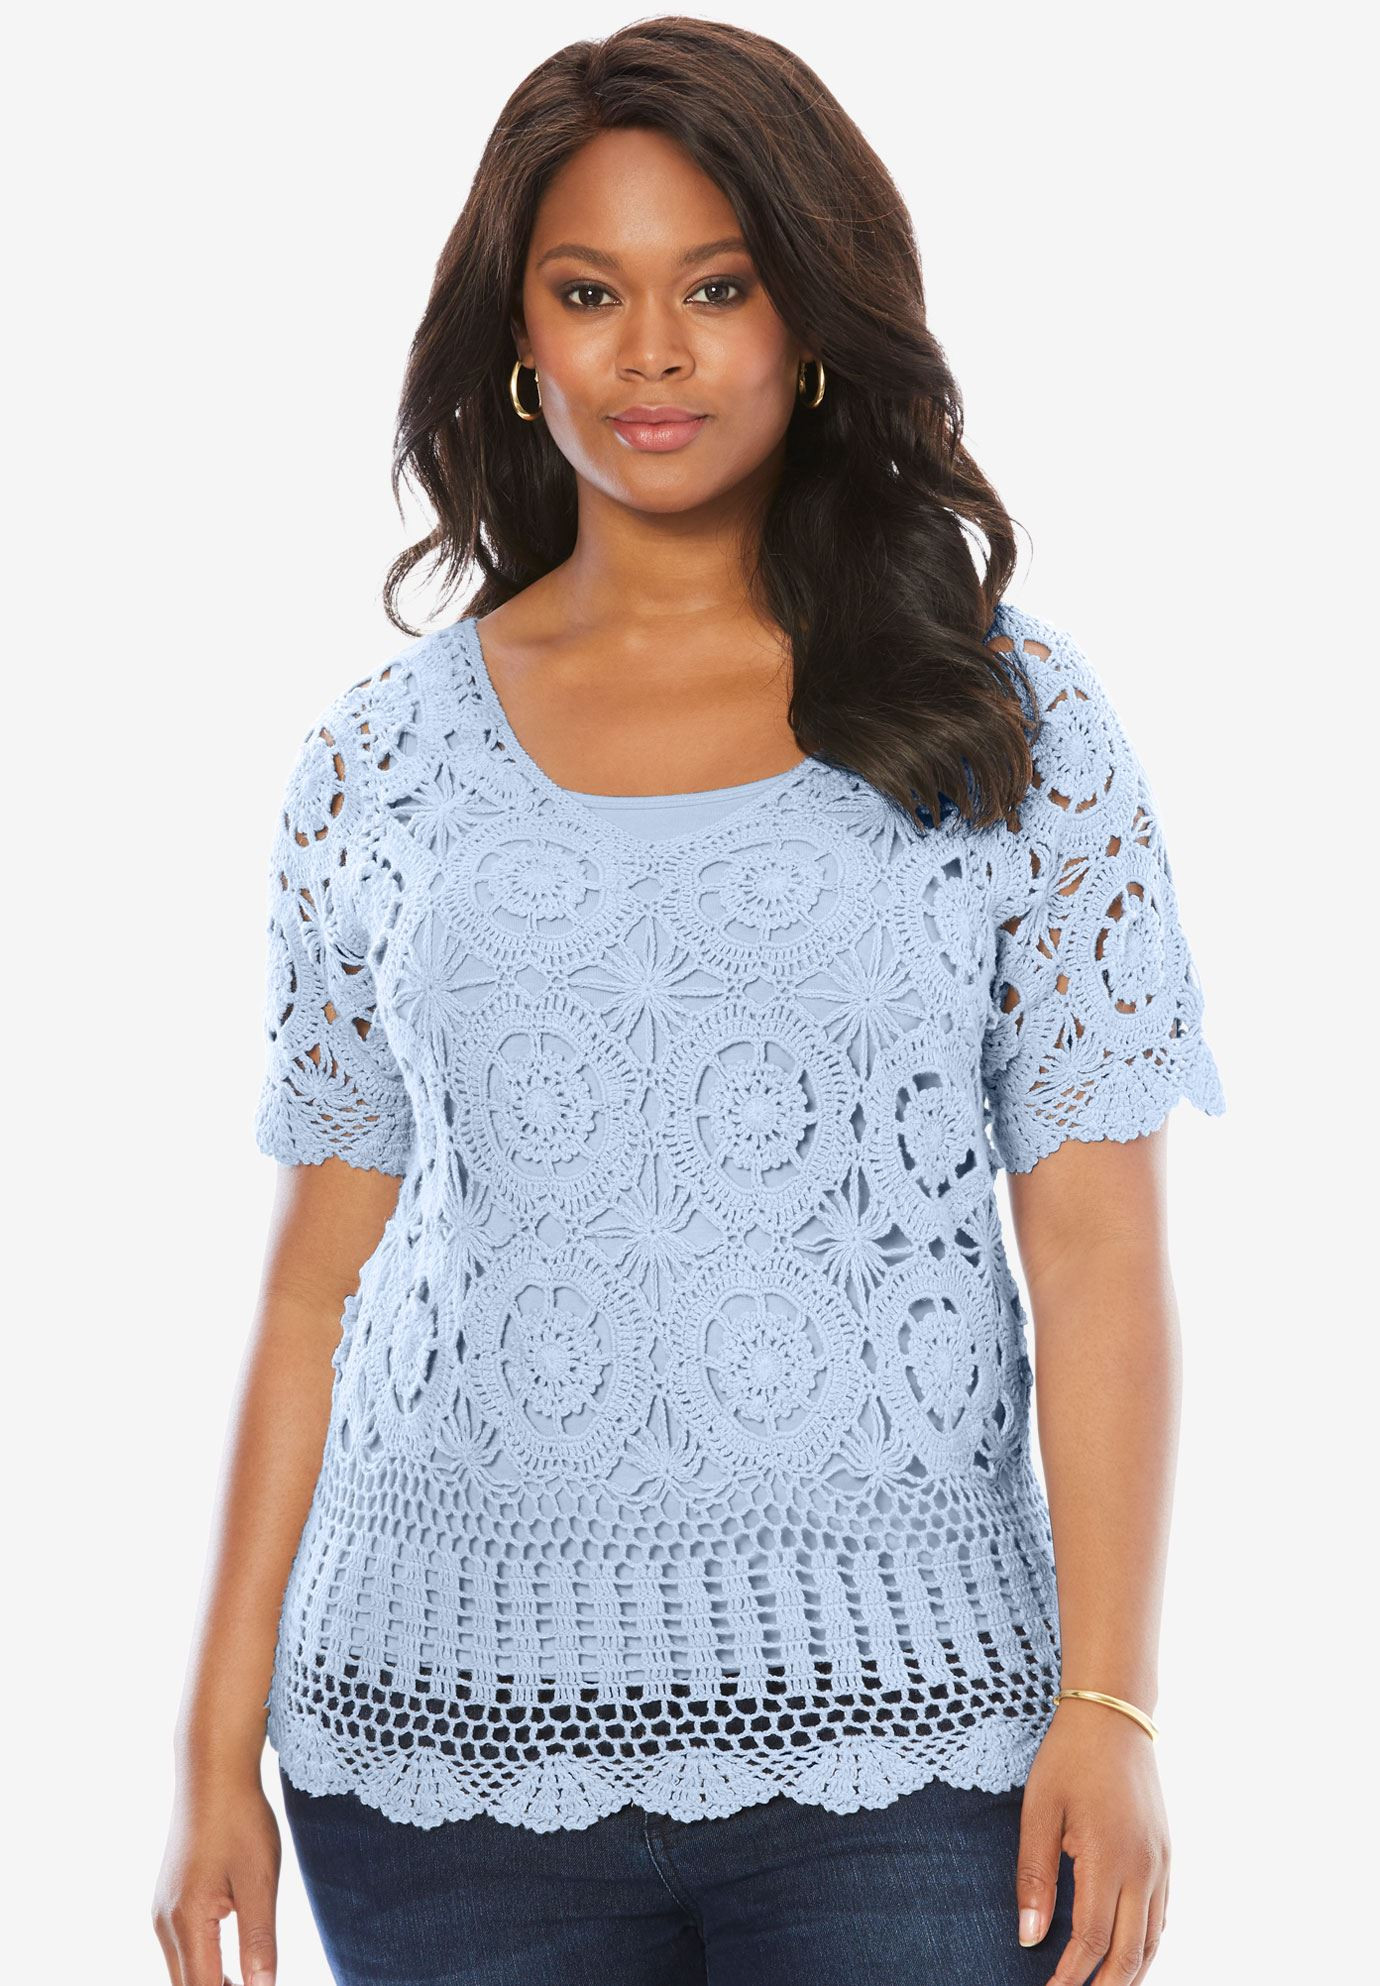 Plus Size Crochet Elegant French Crochet Sweater by Denim 24 7 Of Gorgeous 50 Pictures Plus Size Crochet